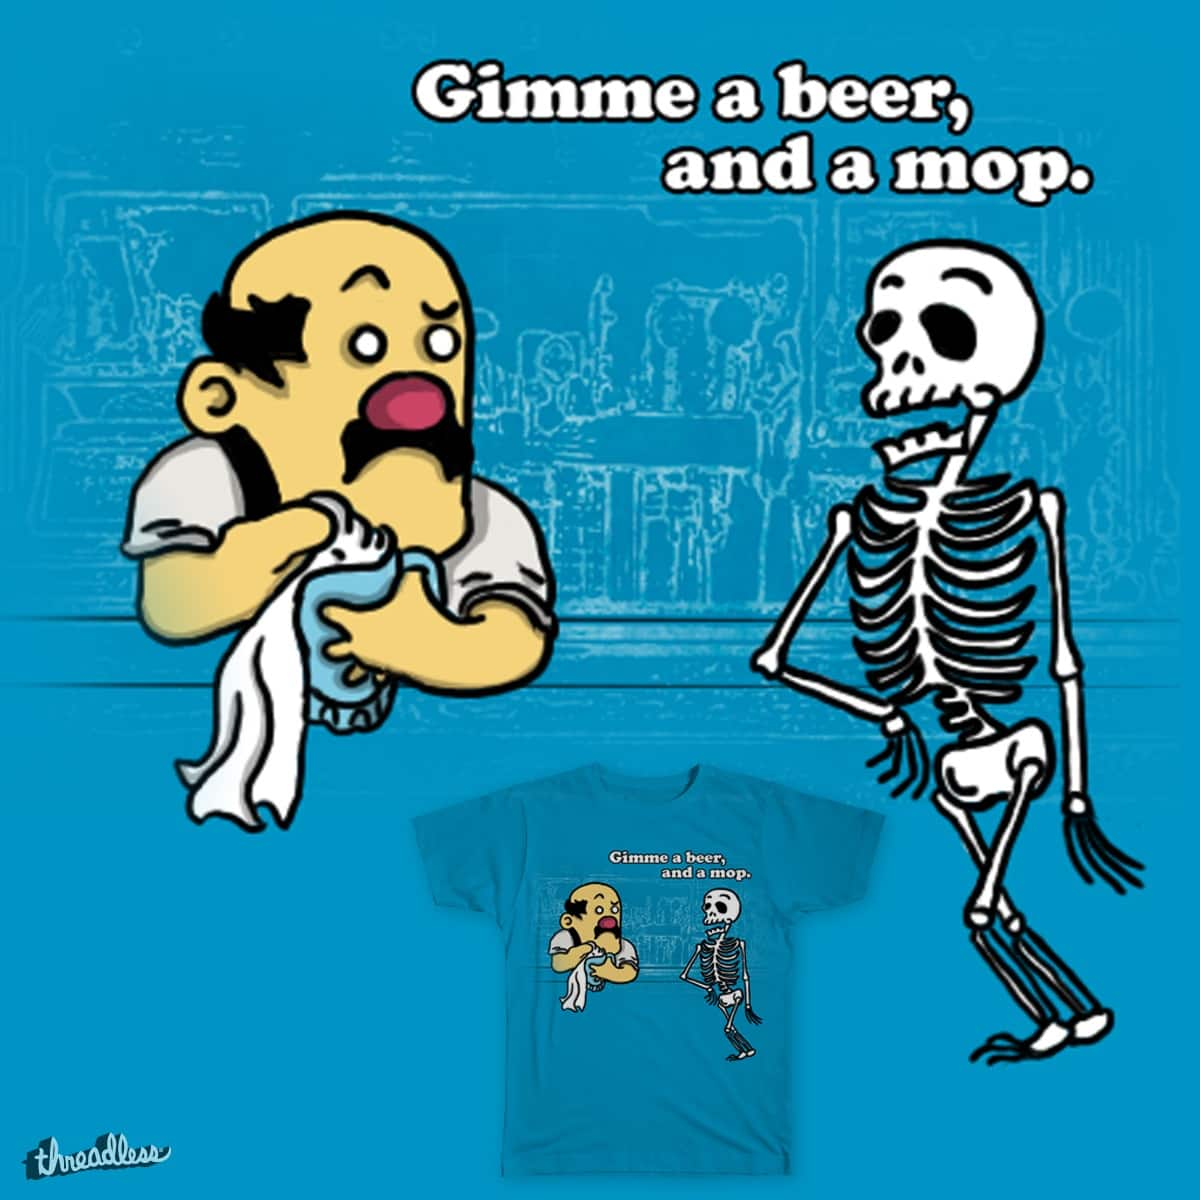 A Skeleton Walks Into a Bar by Birdstick on Threadless